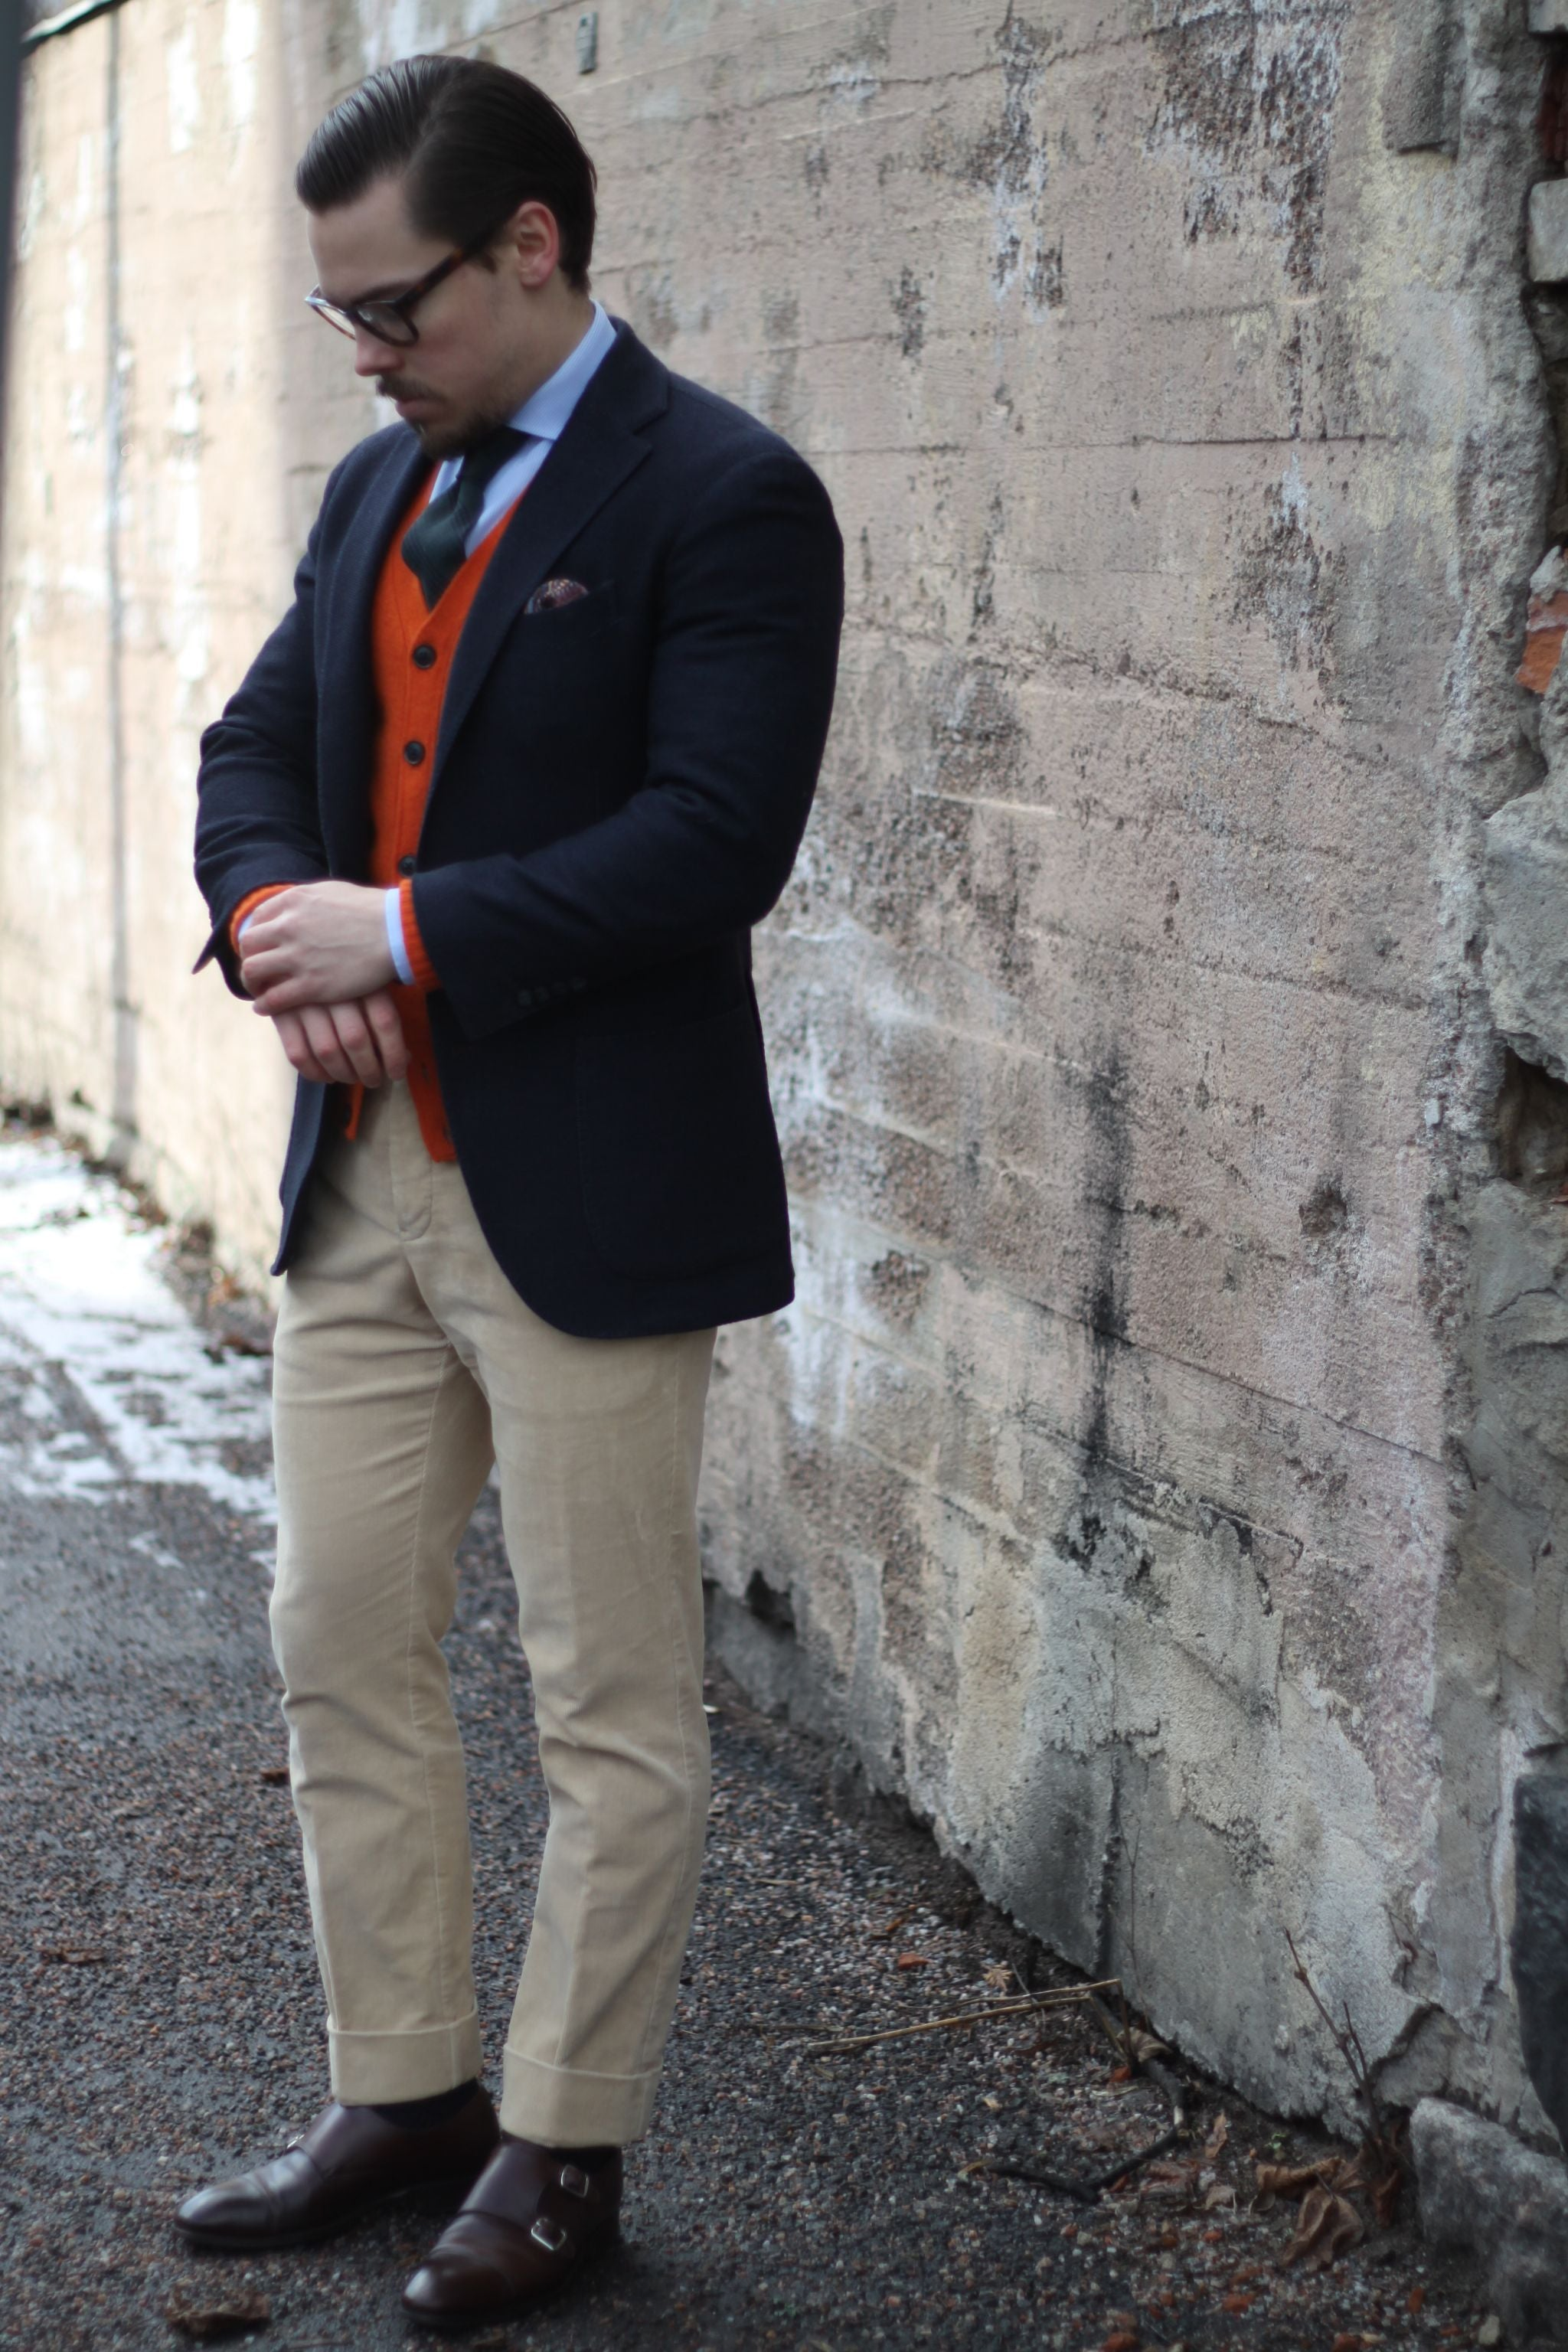 Cardigan with sport coat - blue blazer with cardigan, sand colored trousers and brown double monks by Carmina